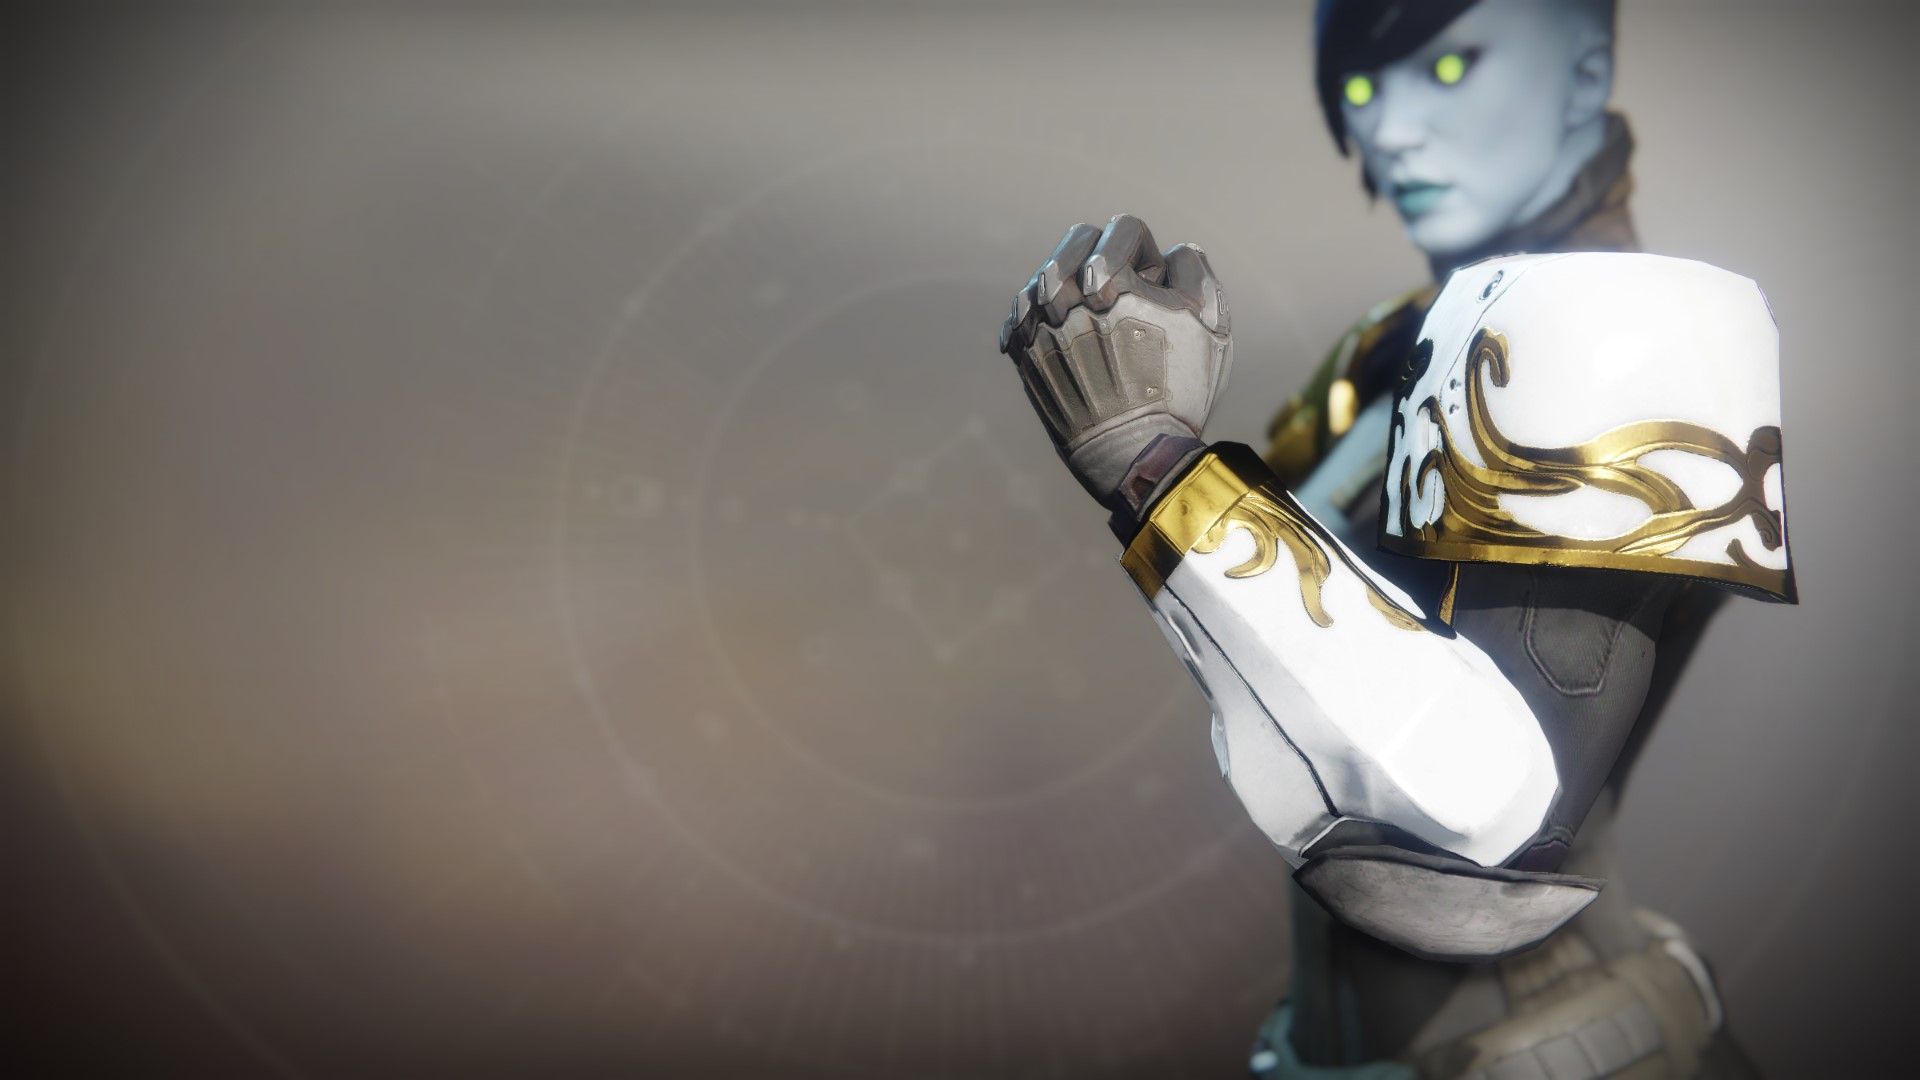 An in-game render of the Solstice Gauntlets (Majestic).